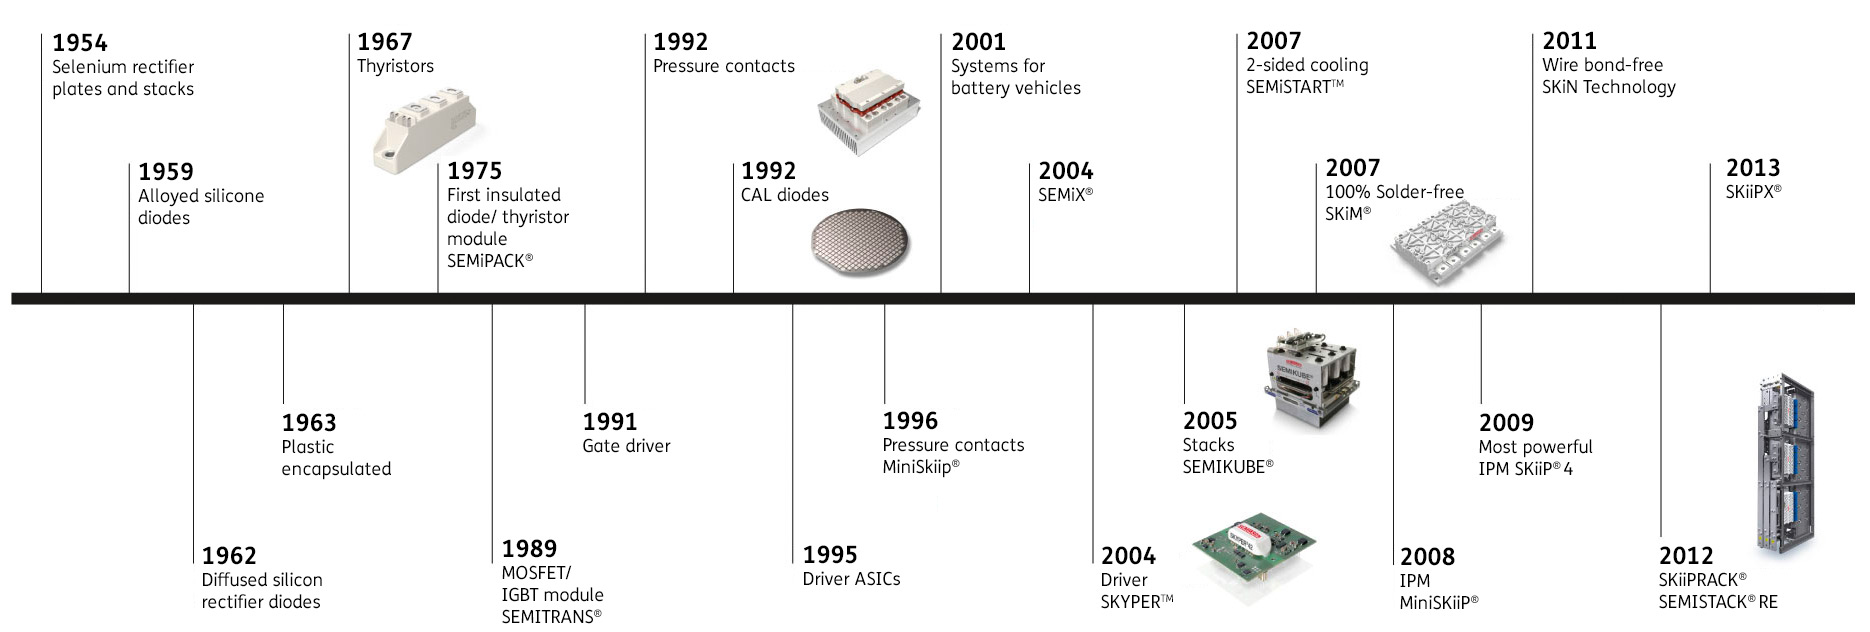 Construction And Connection Technologies Of Power Modules Semikron Thyristors Milestones In The History Product Portfolio